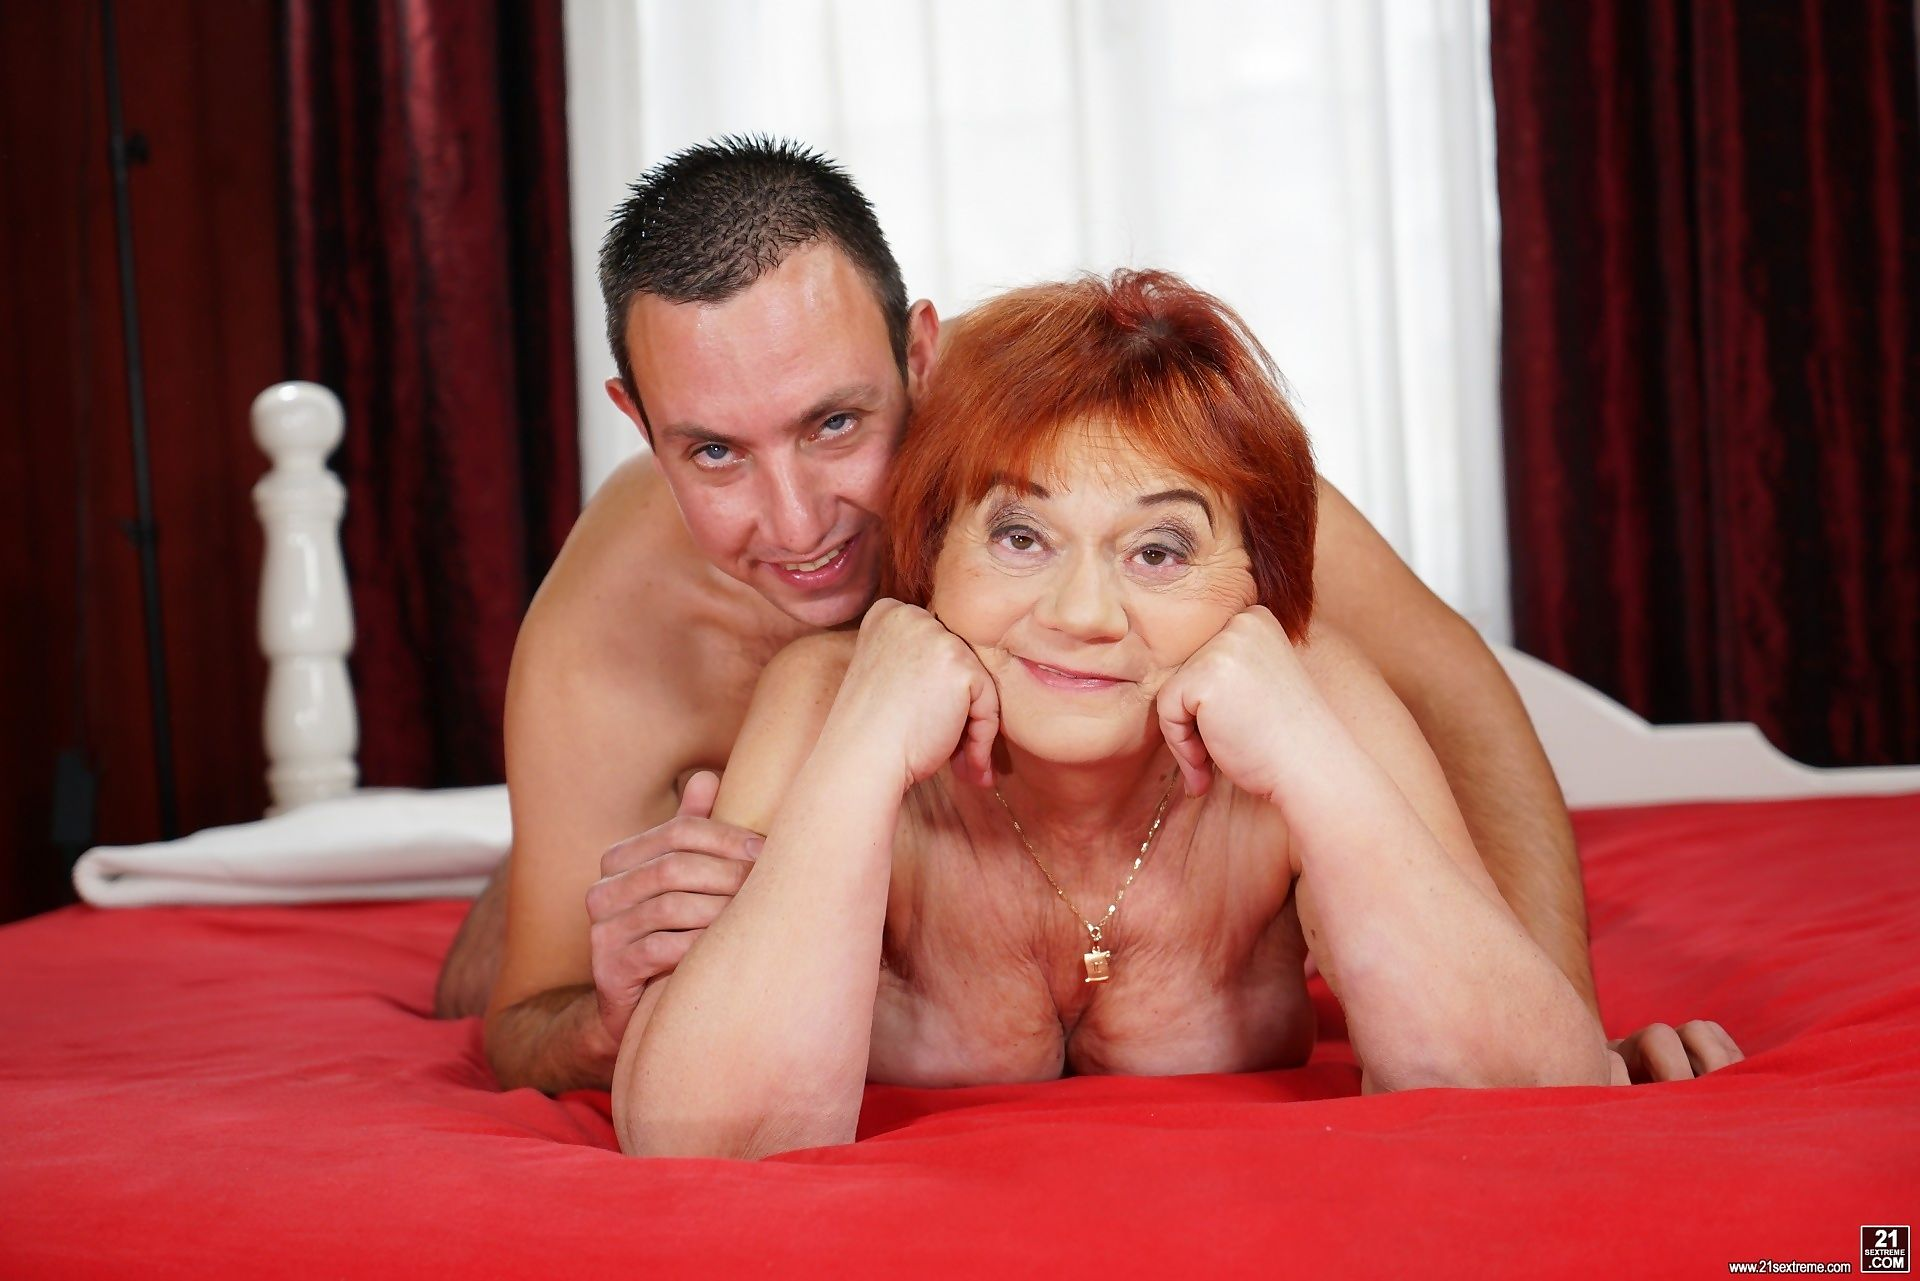 Lusty granny marsha gets all wet fantasizing about young men - part 2215